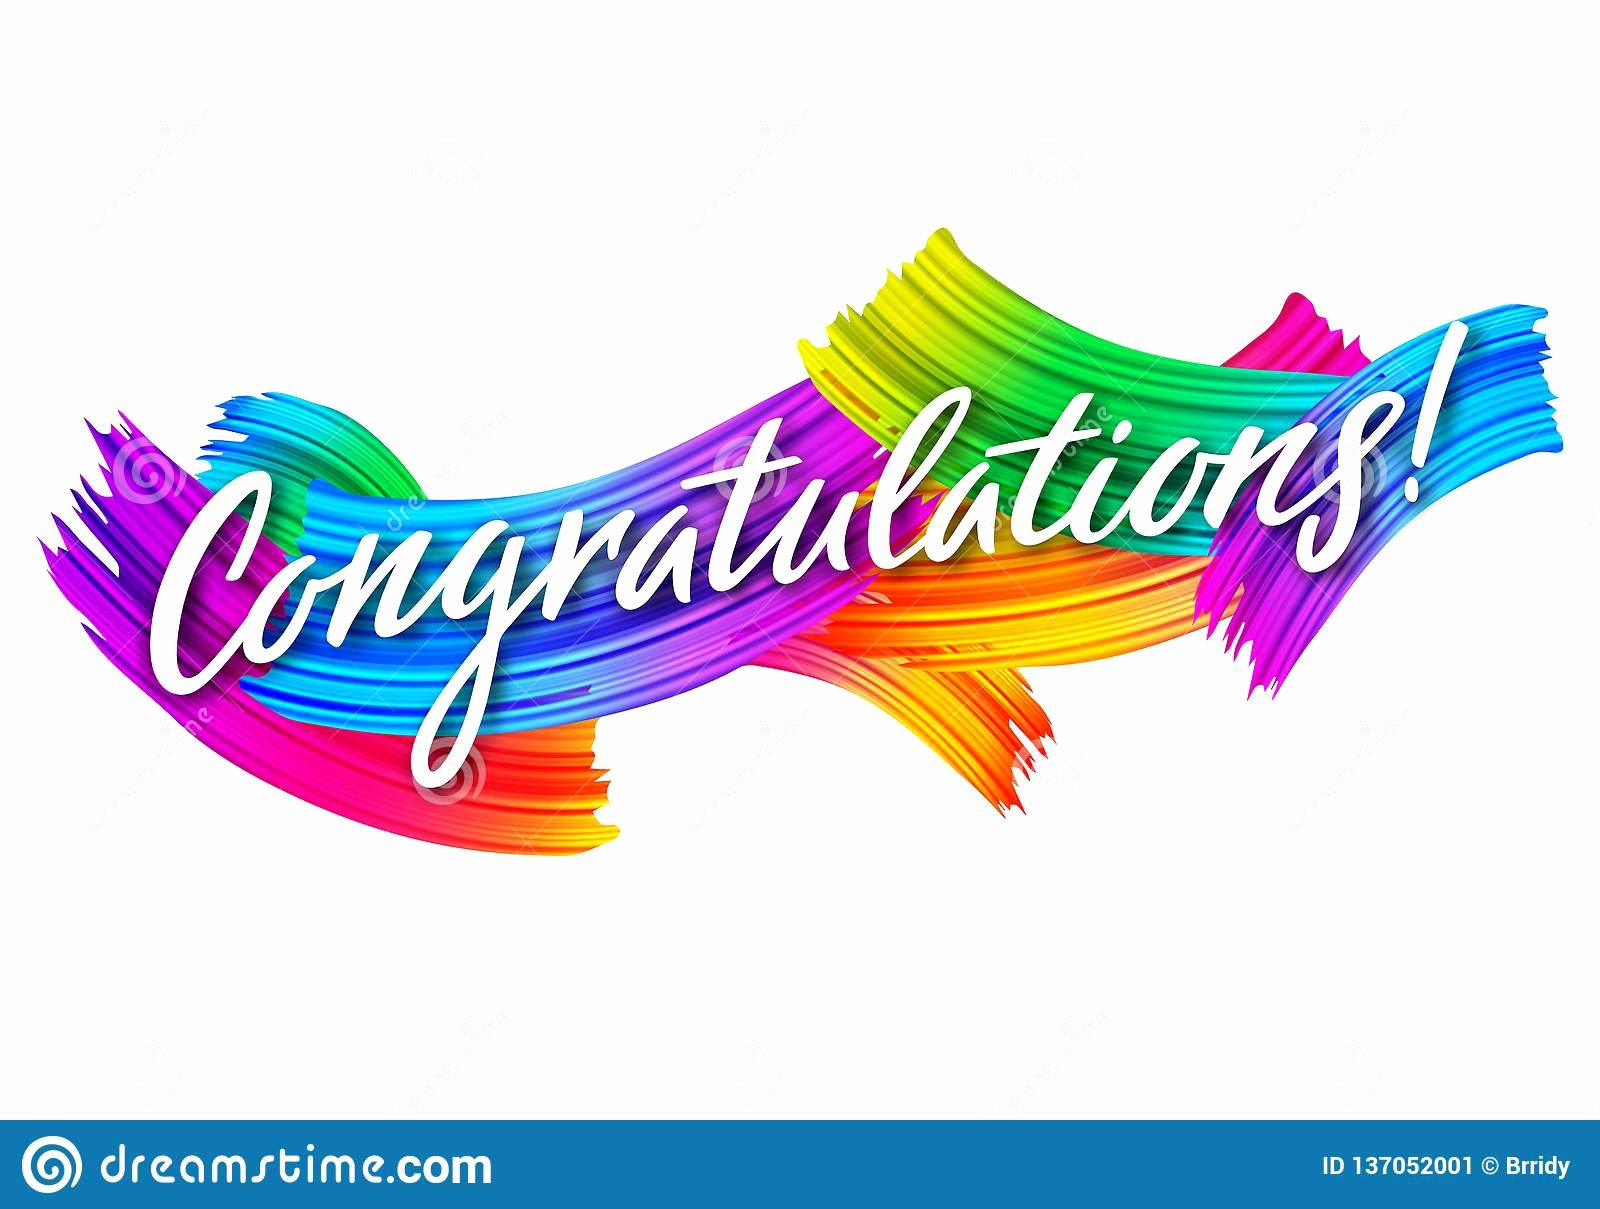 Congratulations Images for Achievement Inspirational Congratulations Banner with Colorful Paint Brush Strokes